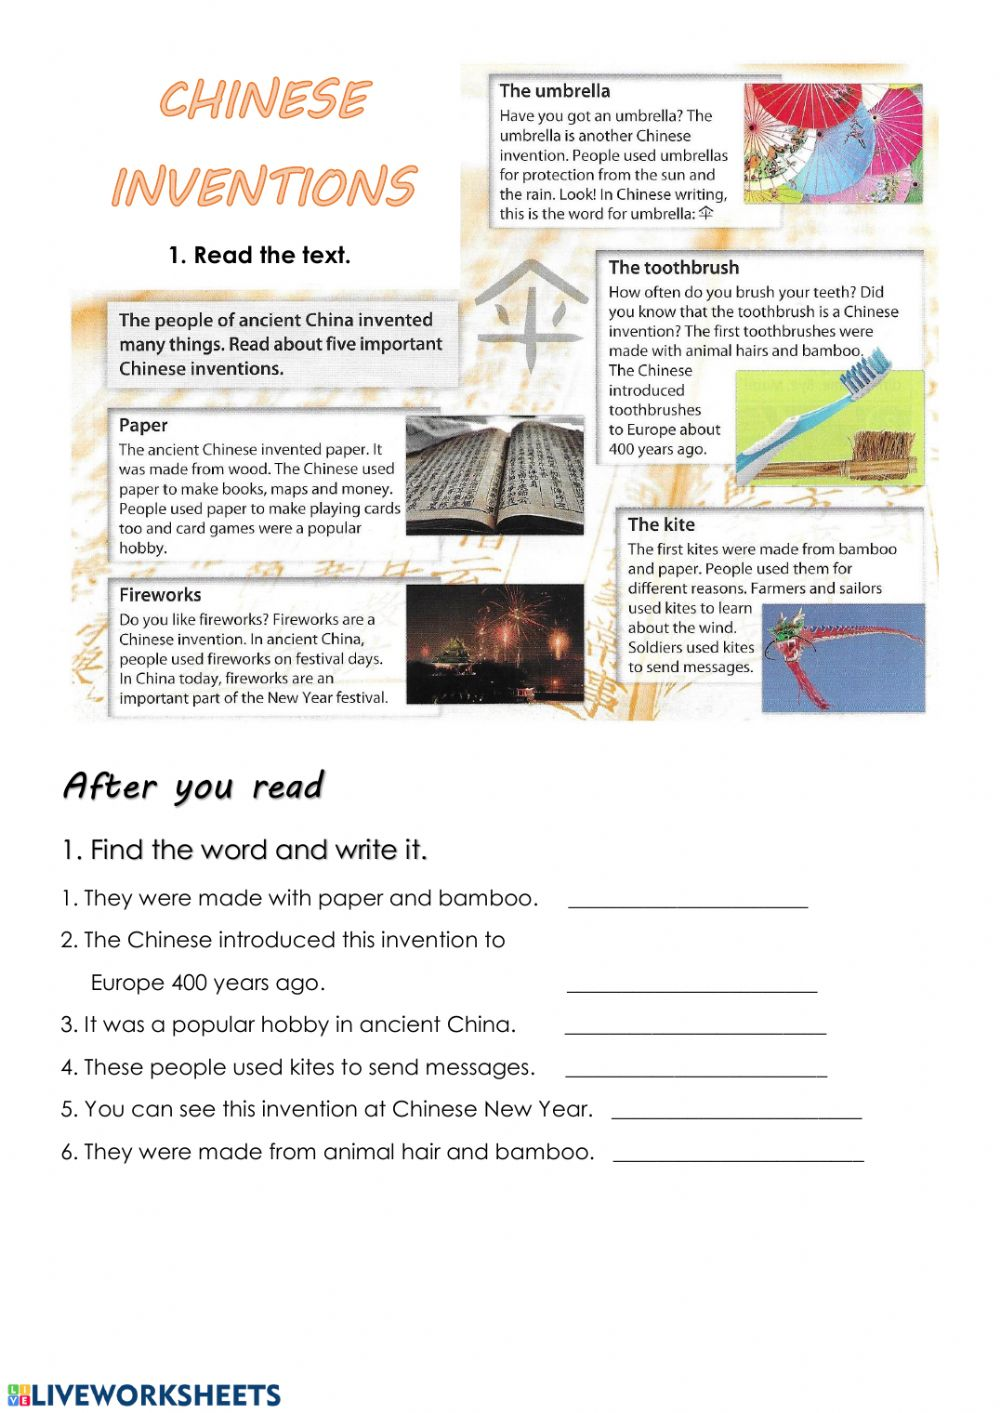 medium resolution of Reading: Chinese inventions worksheet